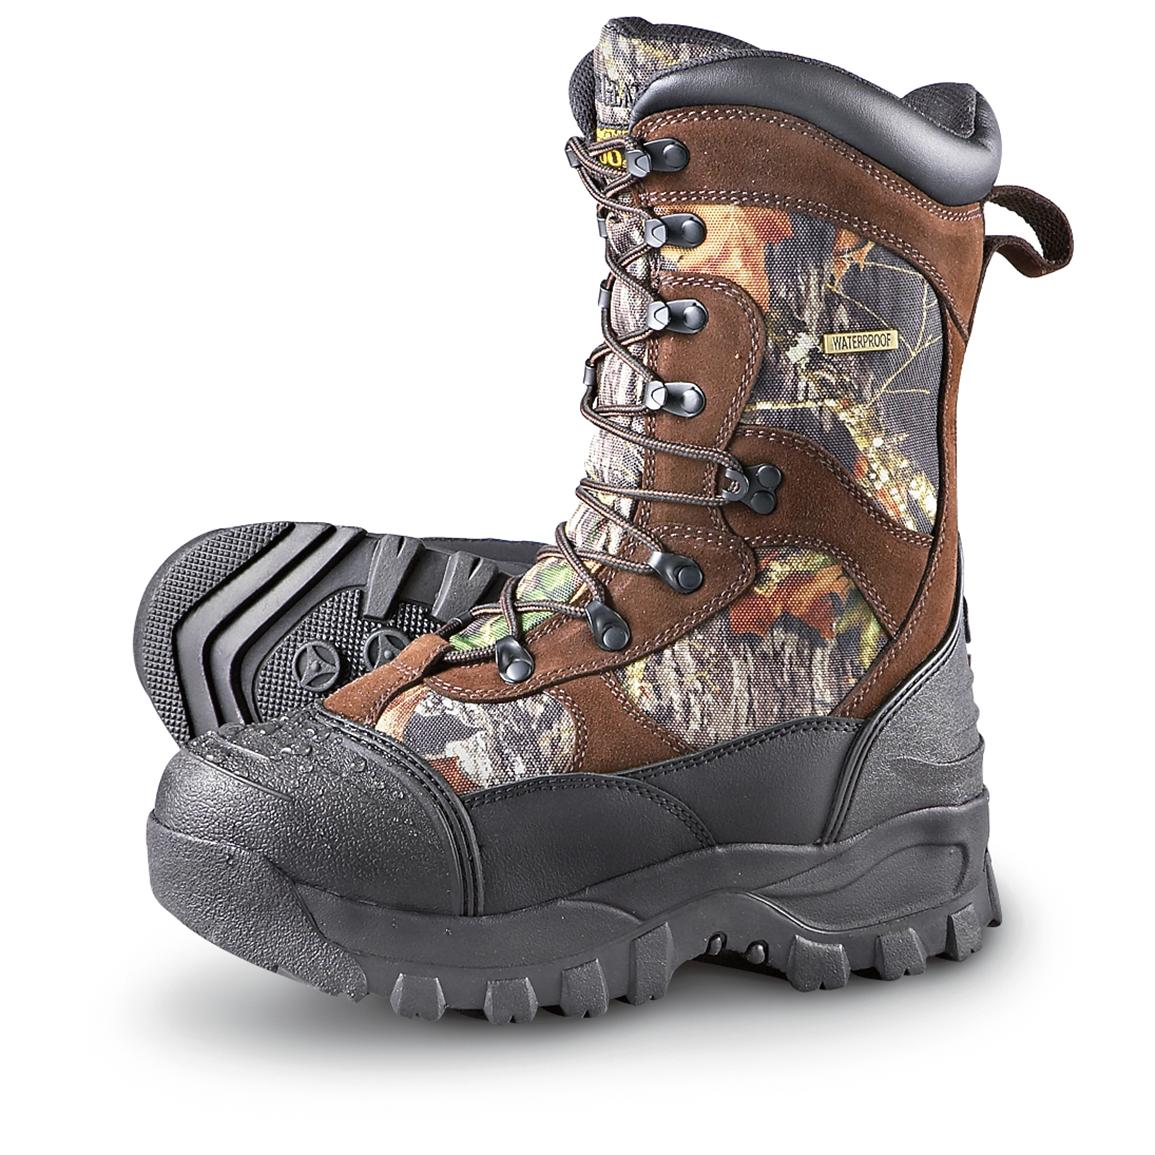 Guide Gear Men's Monolithic Hunting Boots, Insulated, Waterproof, Mossy Oak Break-Up